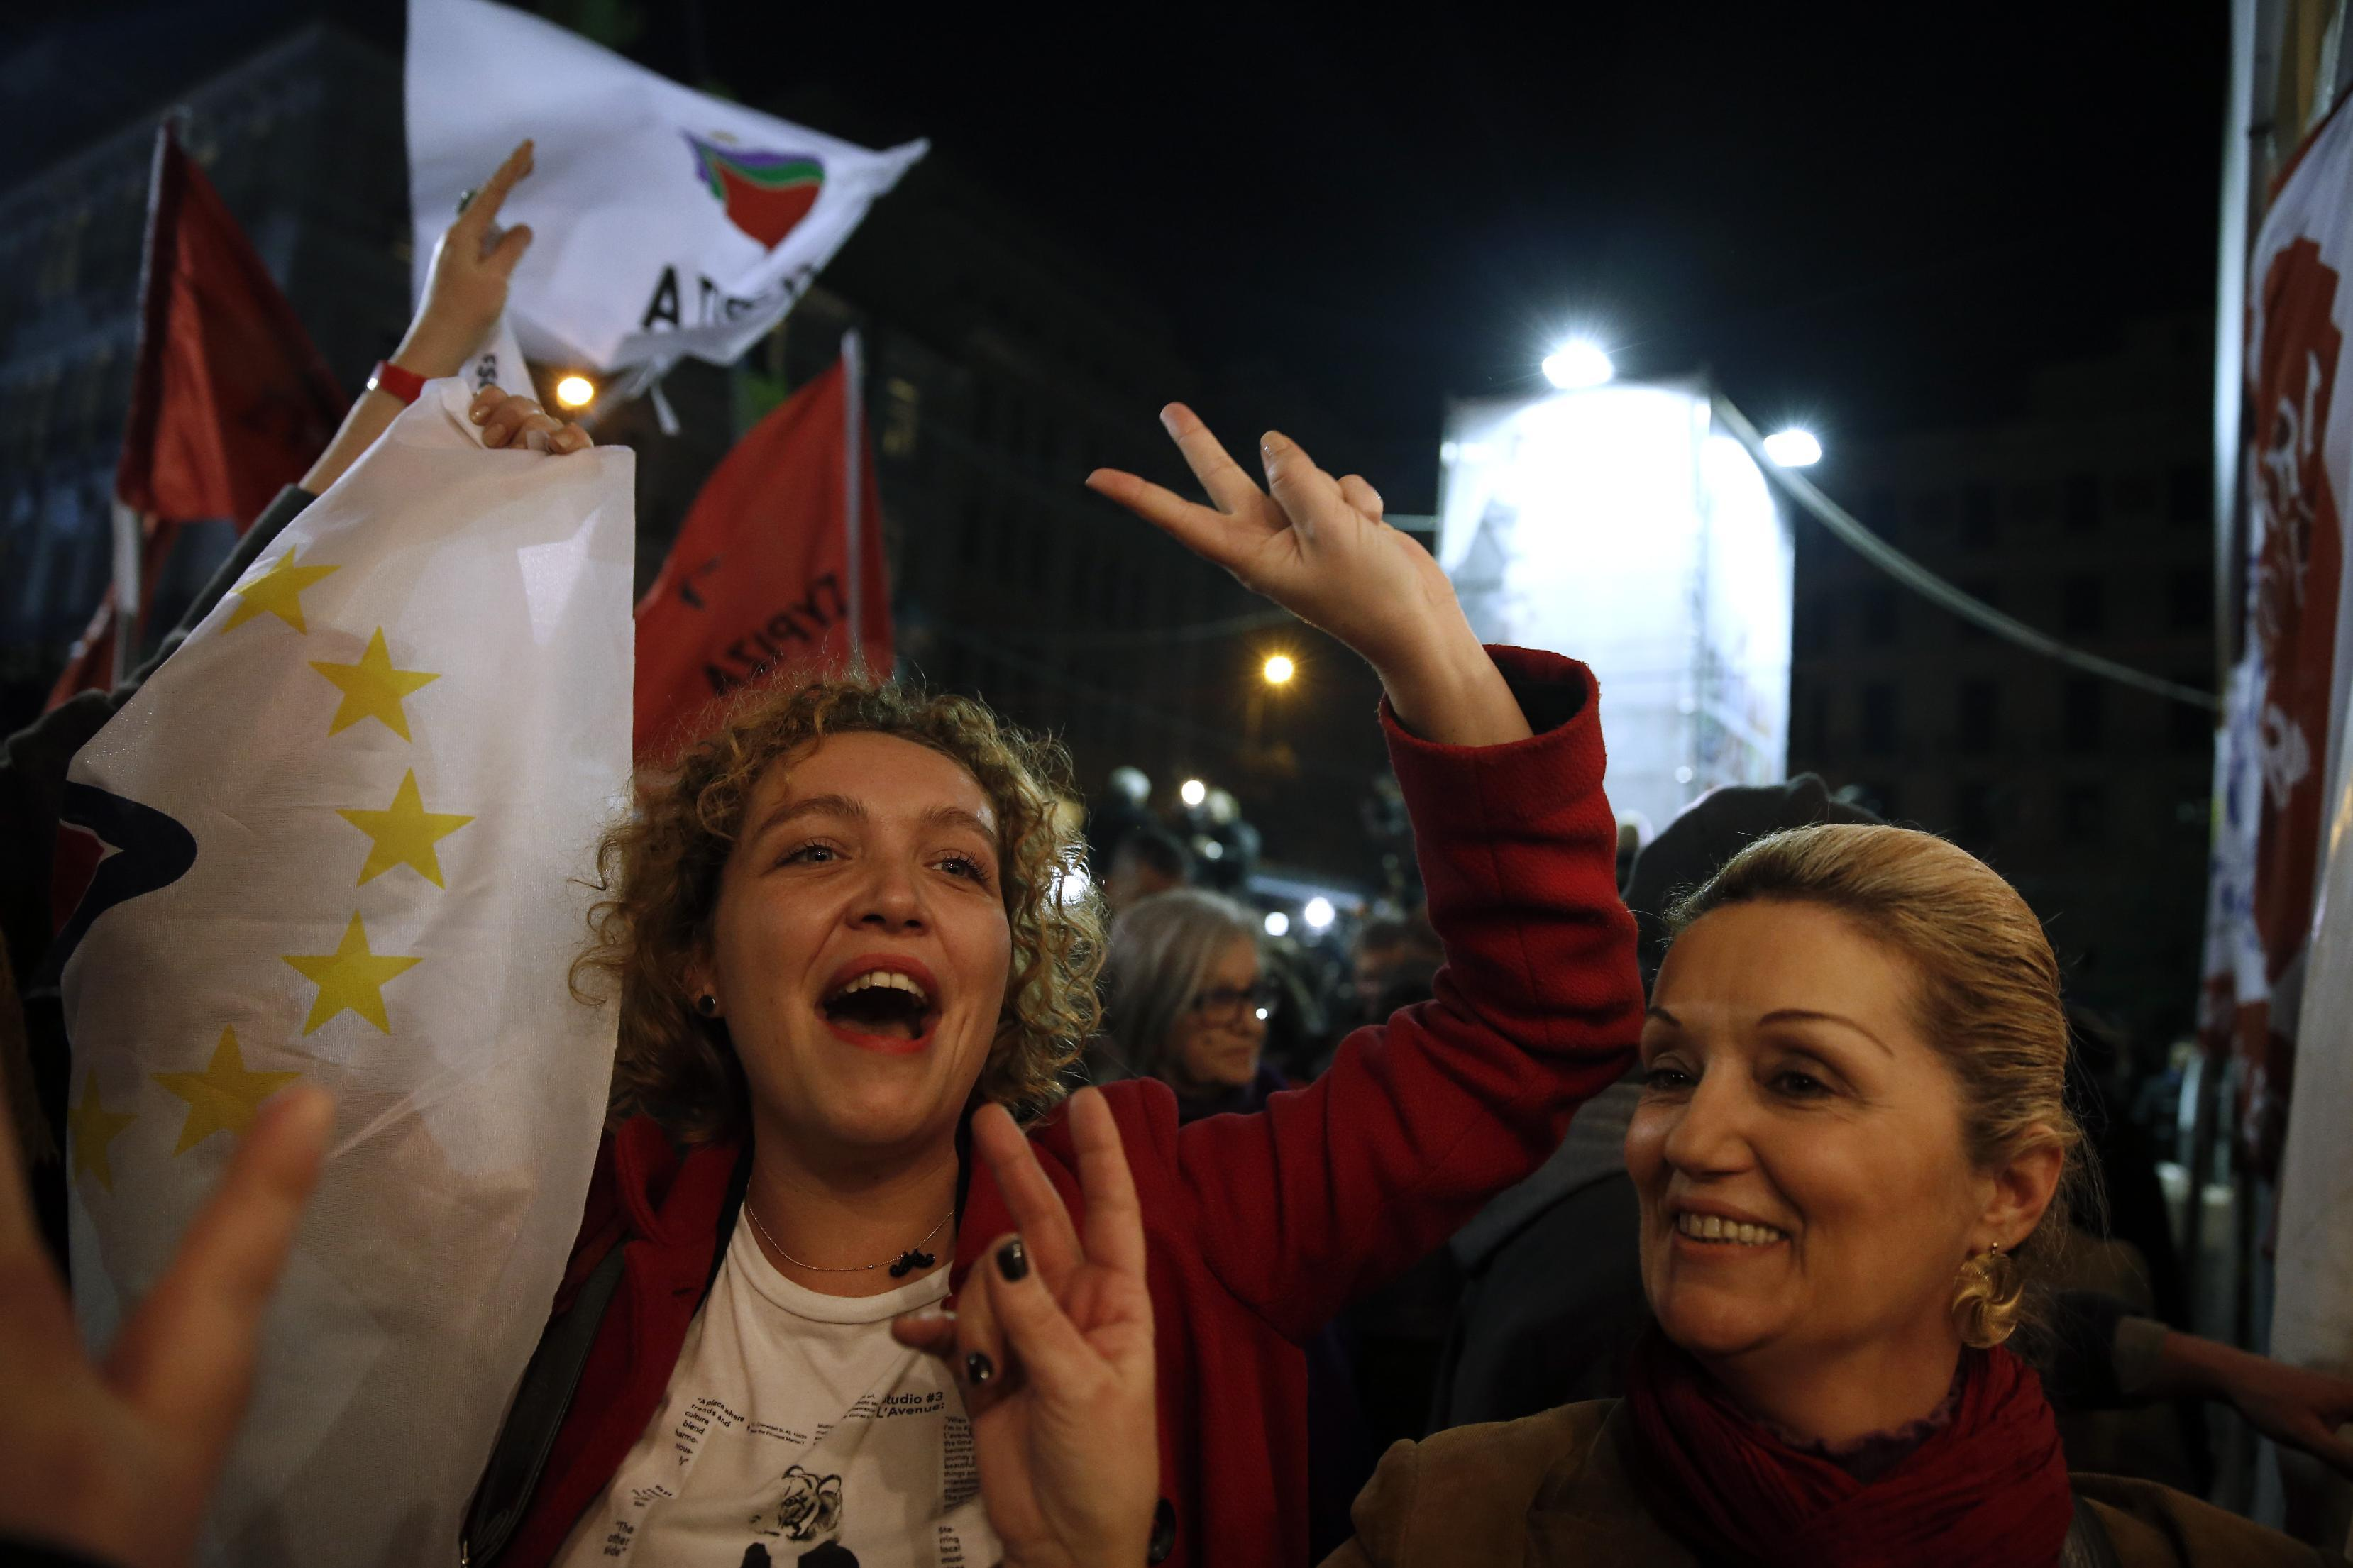 Greece's anti-bailout Syriza party wins election